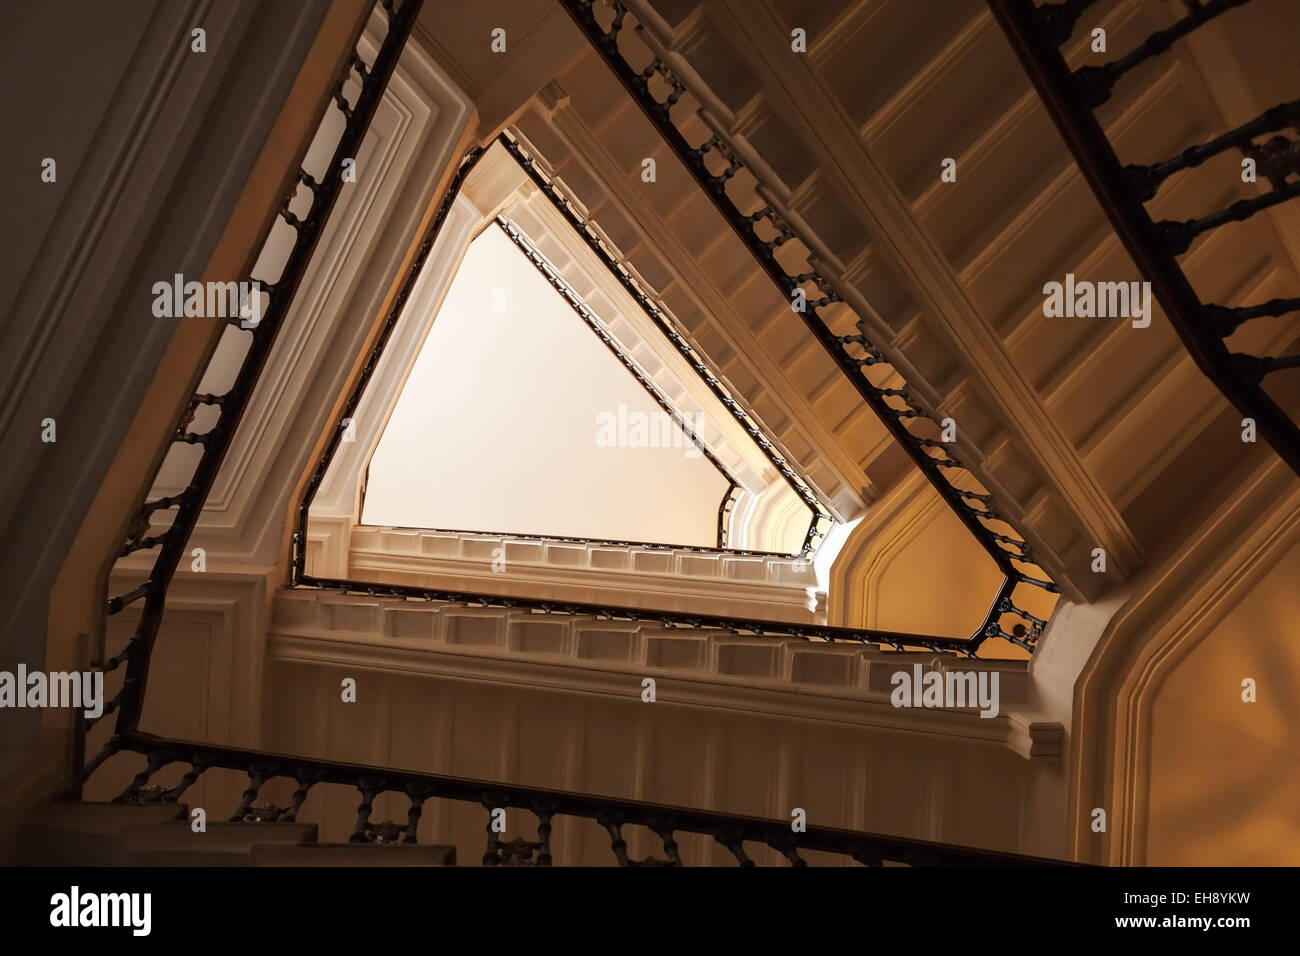 Abstract interior fragment, triangle shaped flight of stairs, looking up - Stock Image